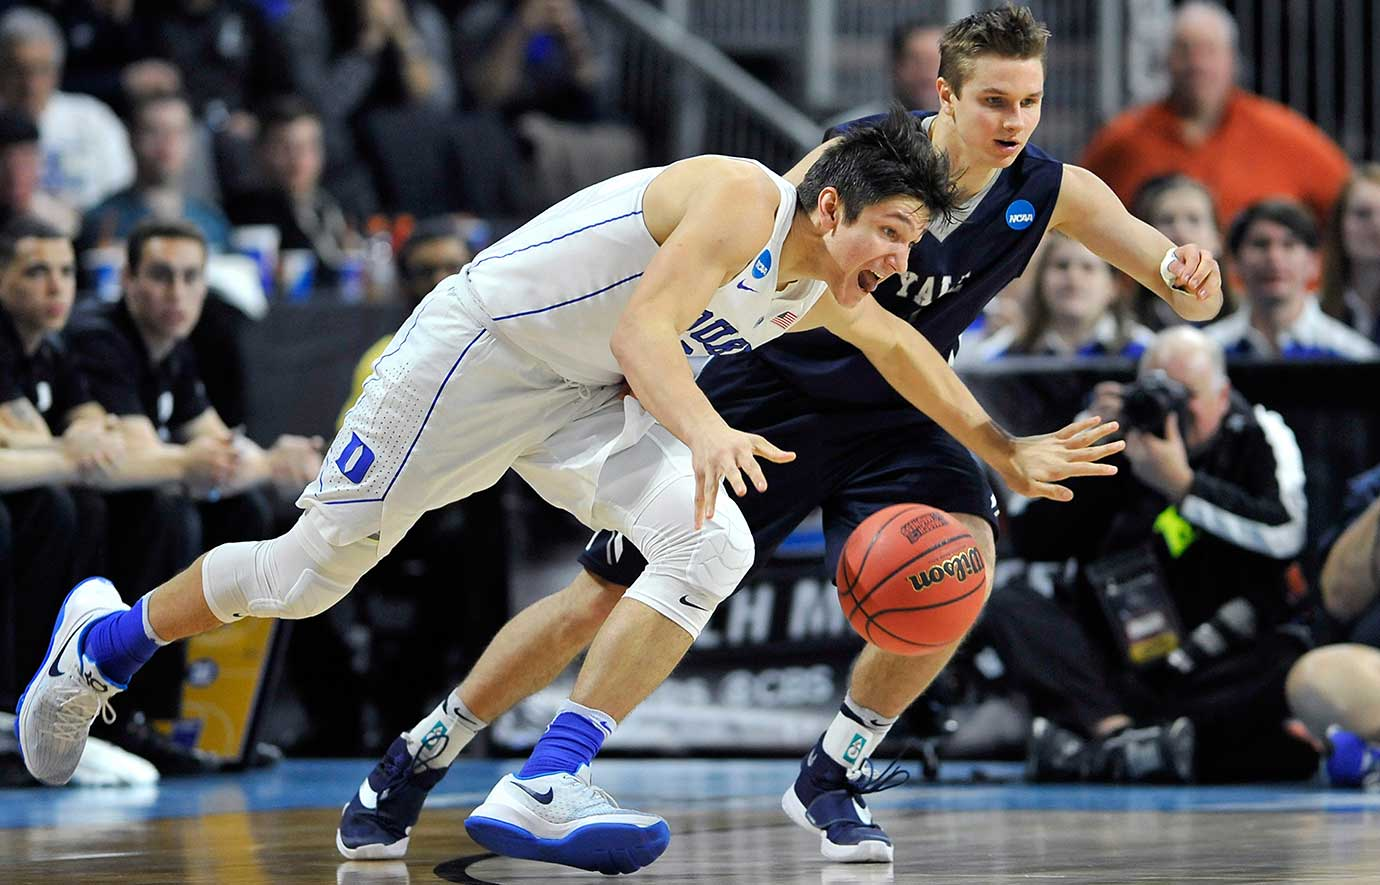 Duke's Grayson Allen loses control of the ball as Yale's Makai Mason defends. Duke advanded, 71-64.